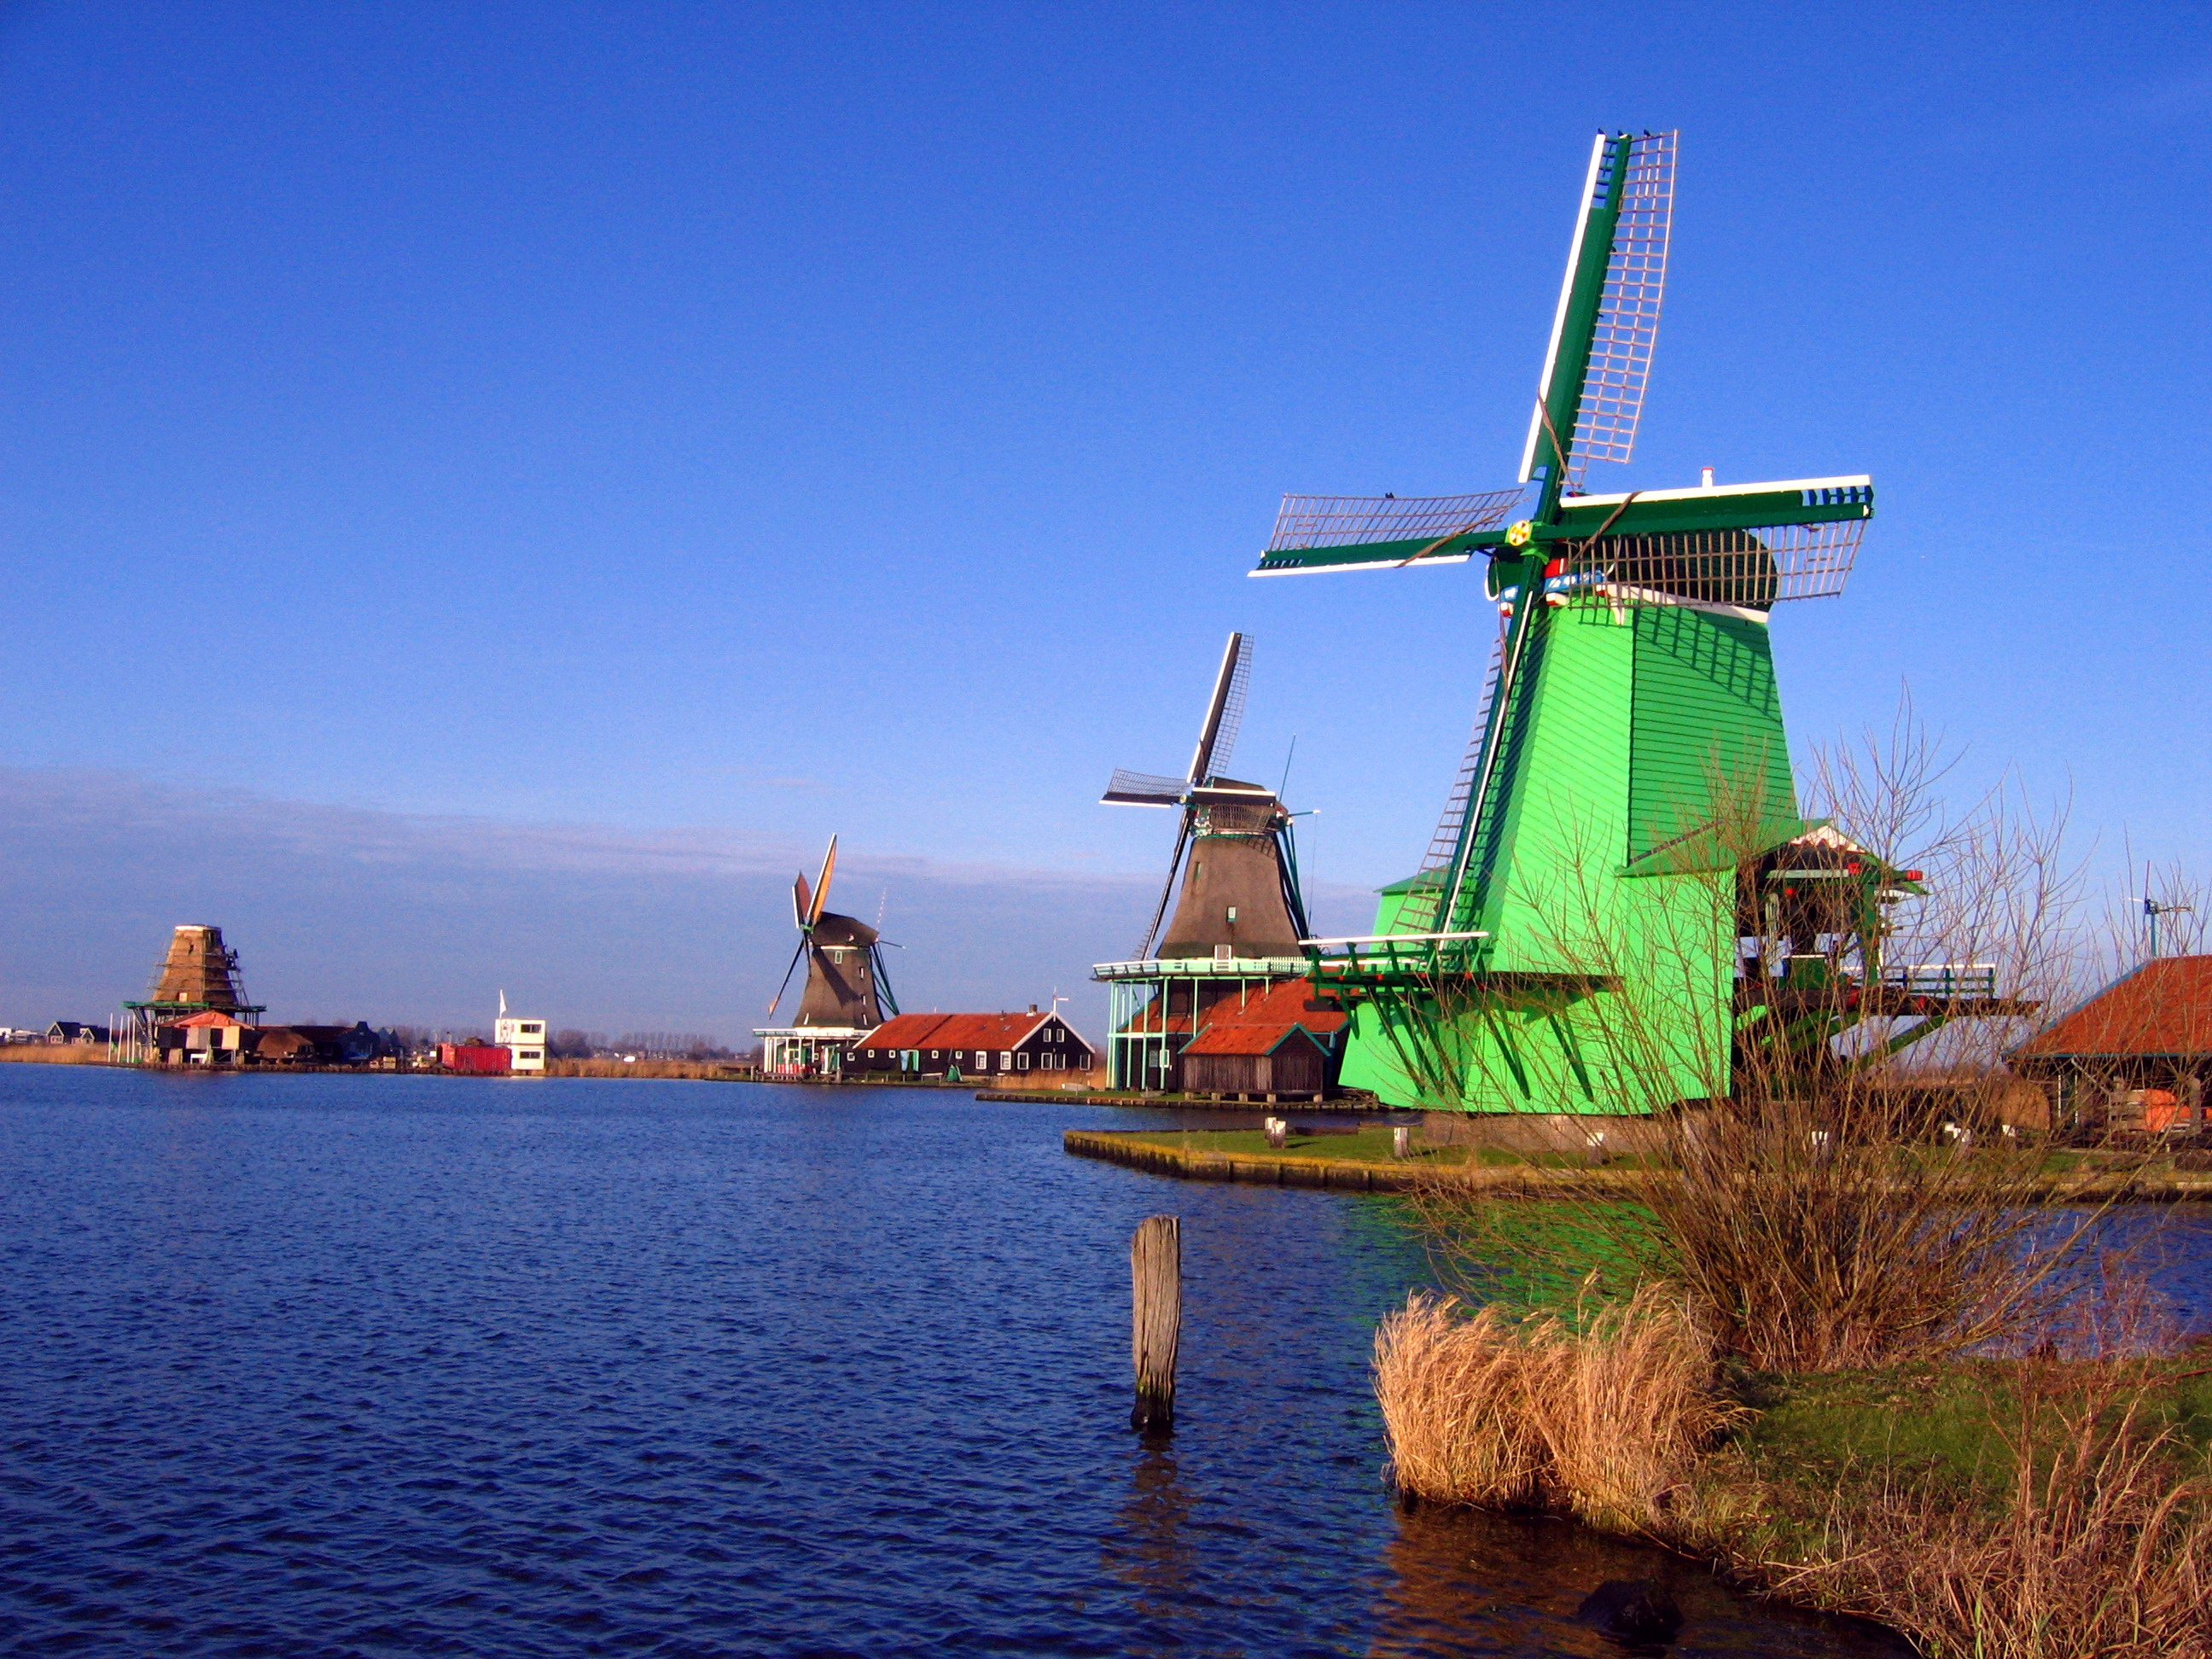 File:Windmills in Zaanse Schans.jpg - Wikimedia Commons